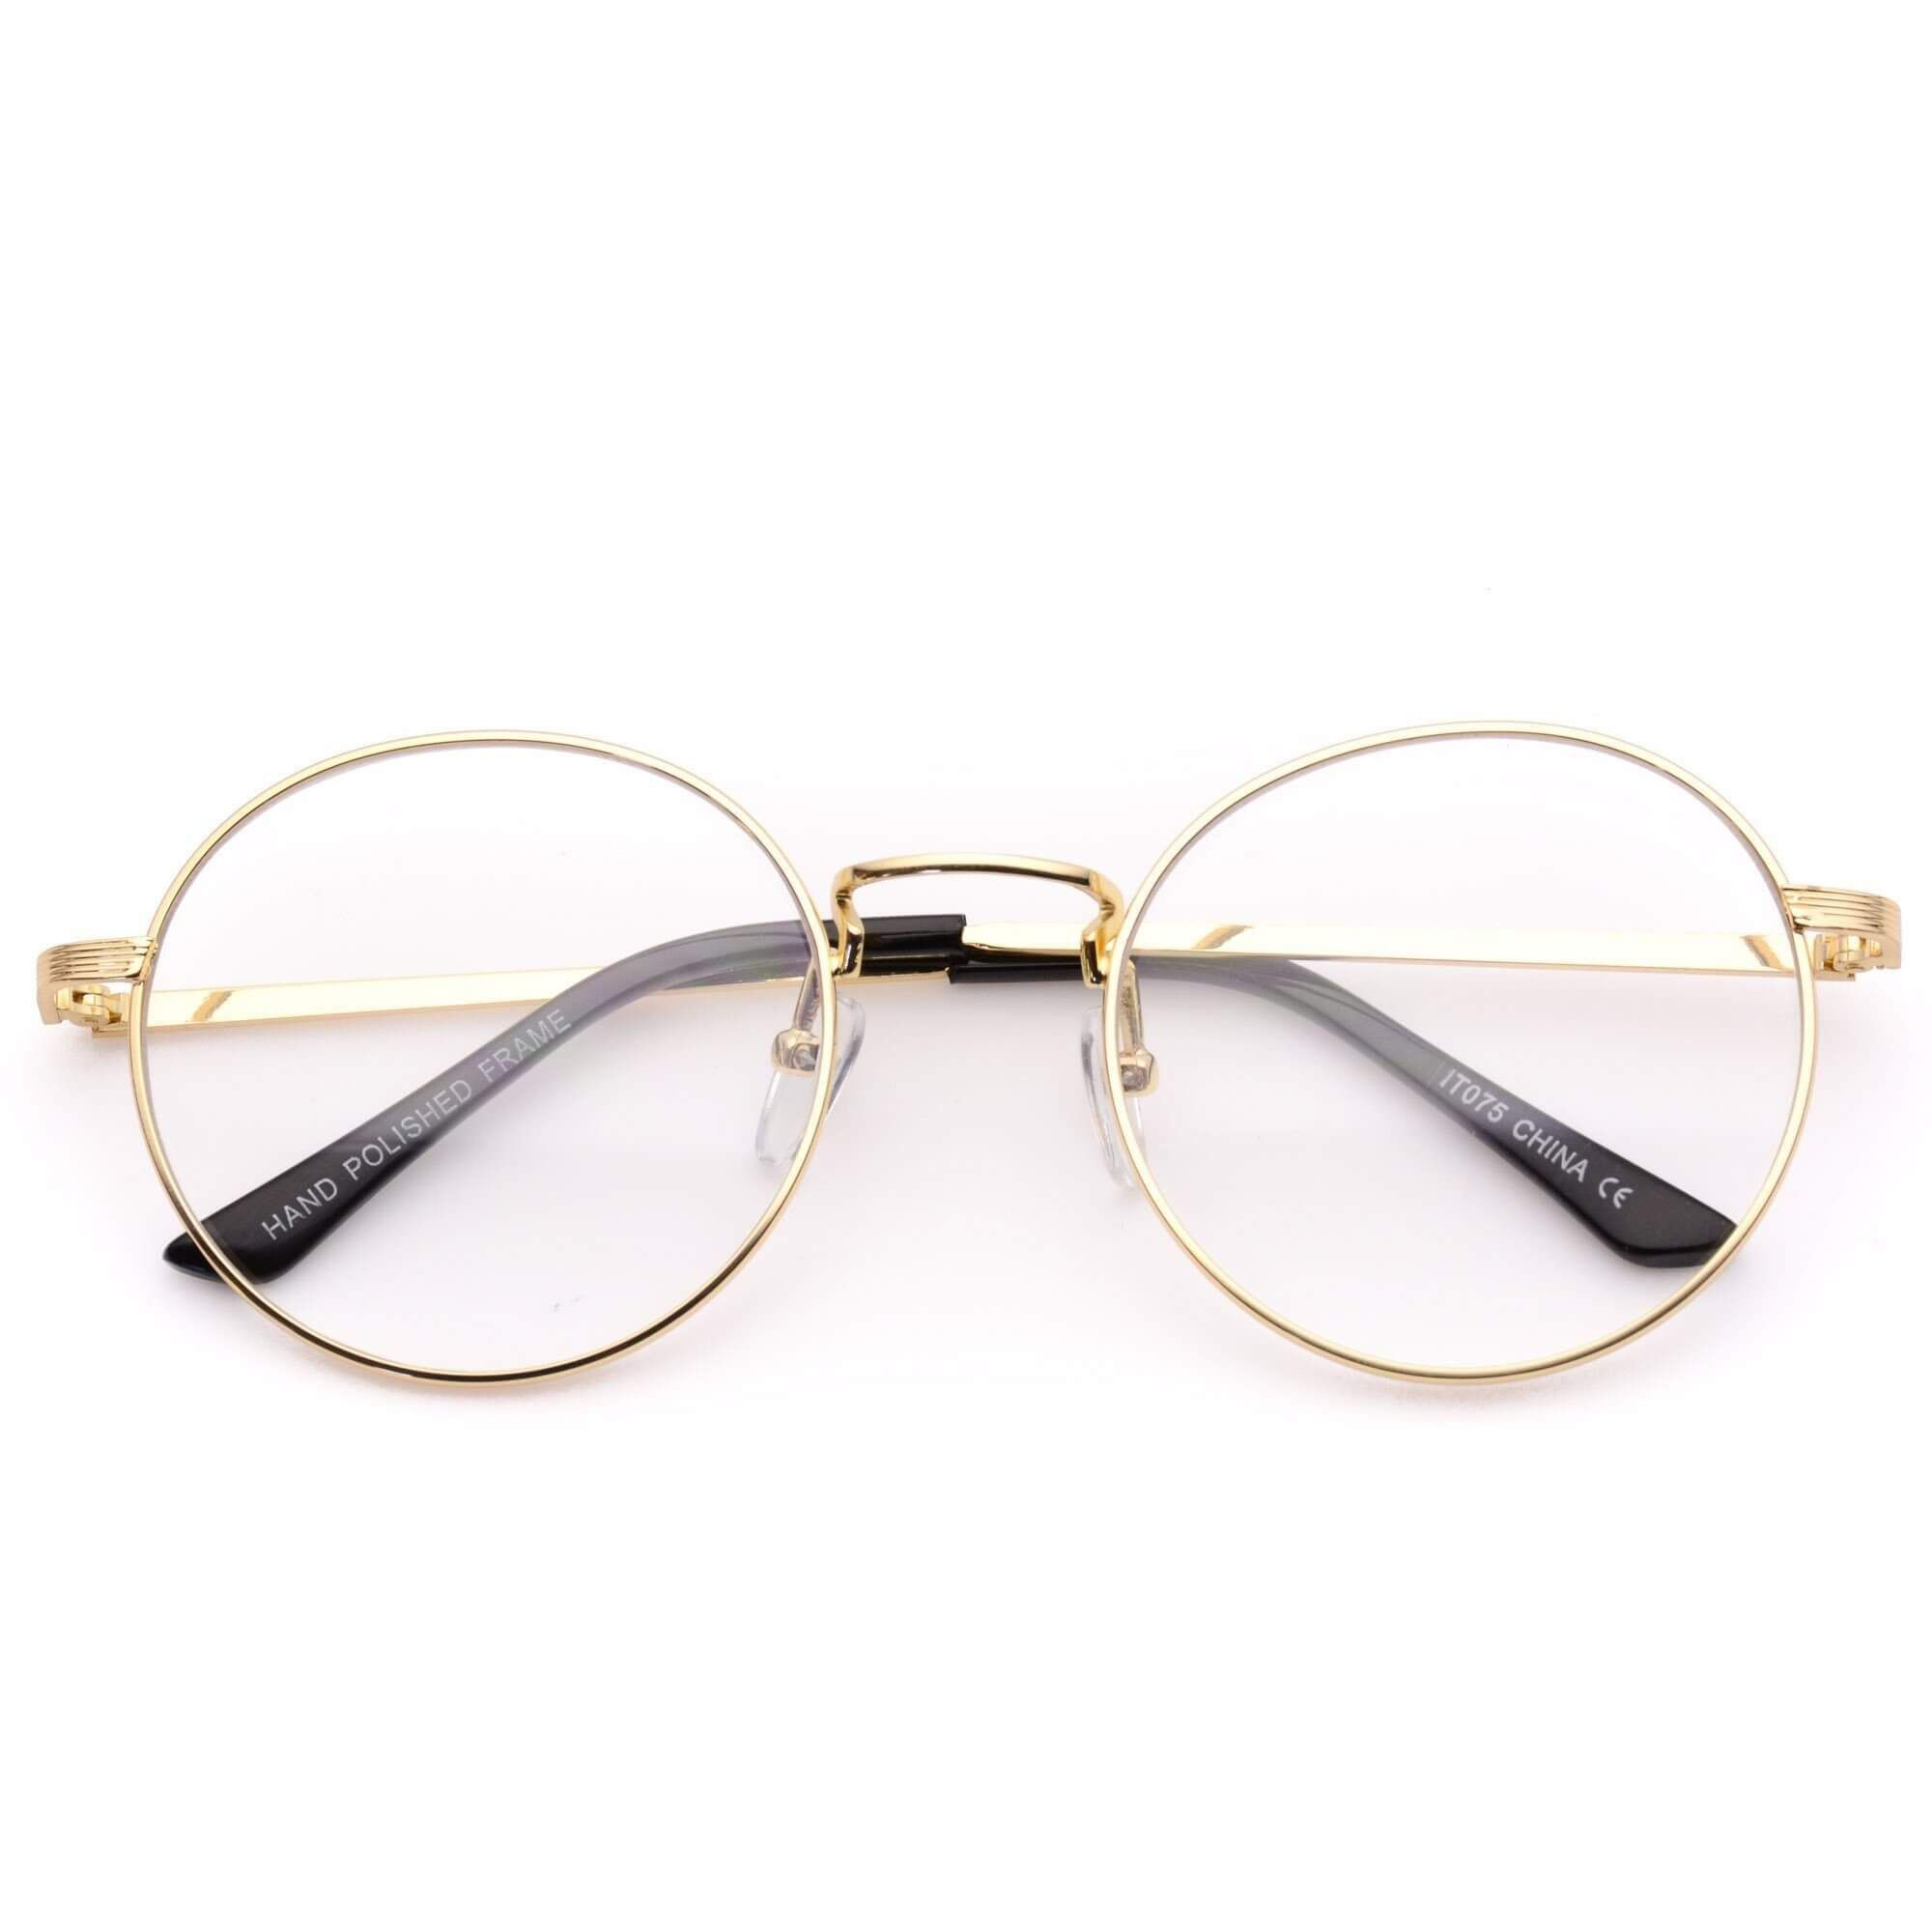 Blaine Round Metal Clear Glasses - Trendy Hipster Round Frame Clear ...